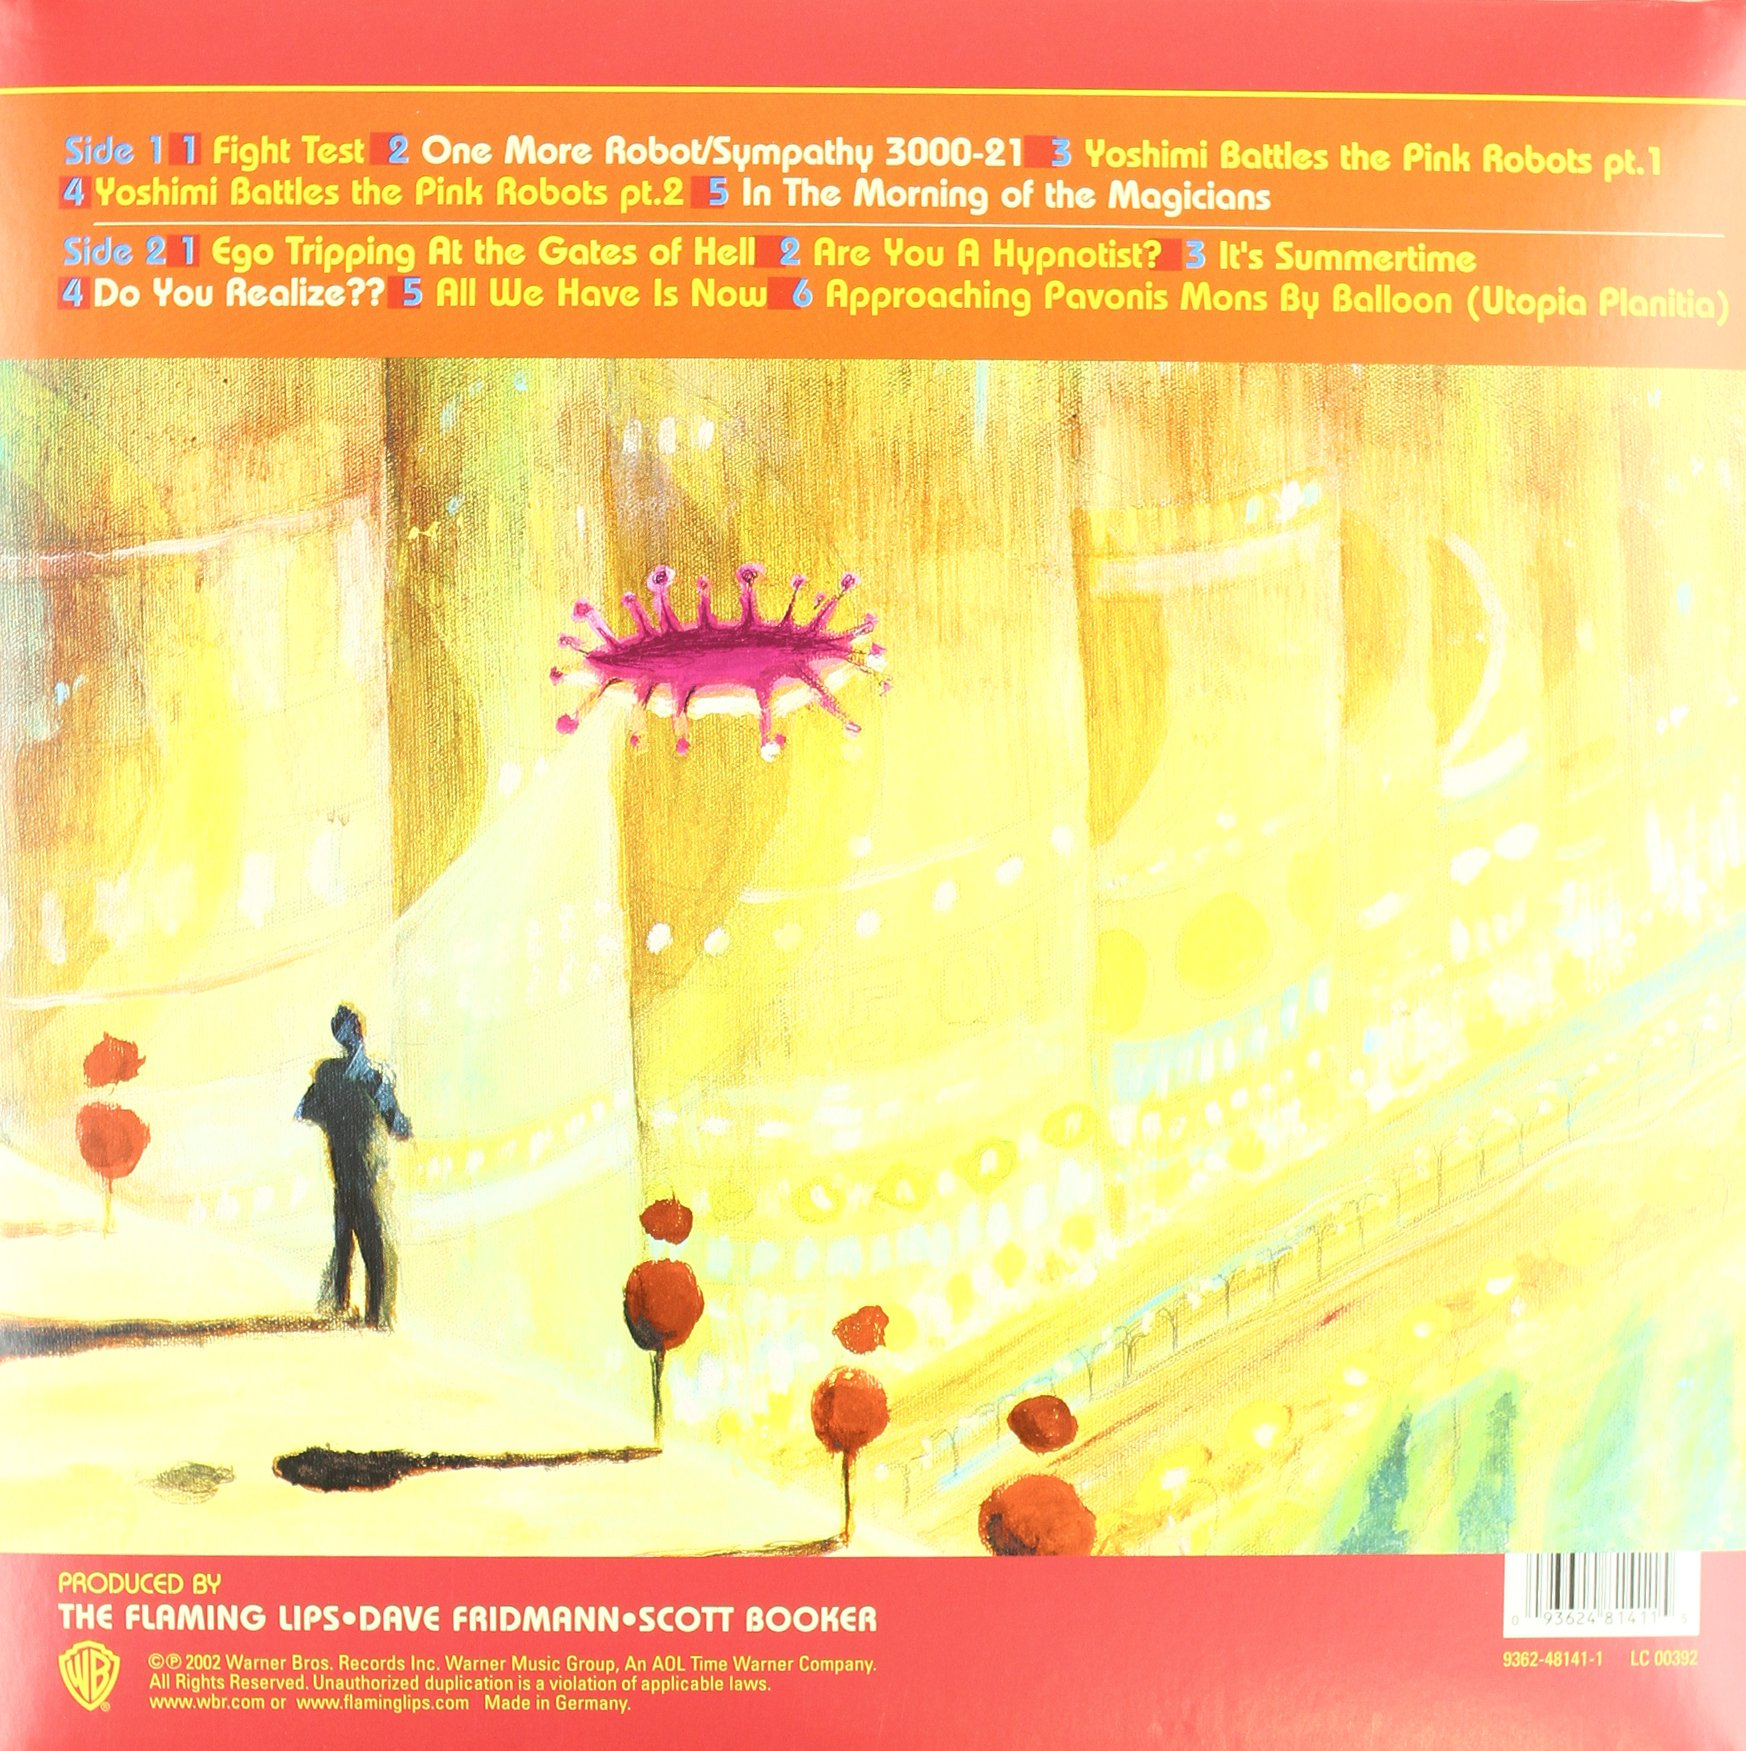 Yoshimi Battles the Pink Robots [Vinyl] by Wea Int'L